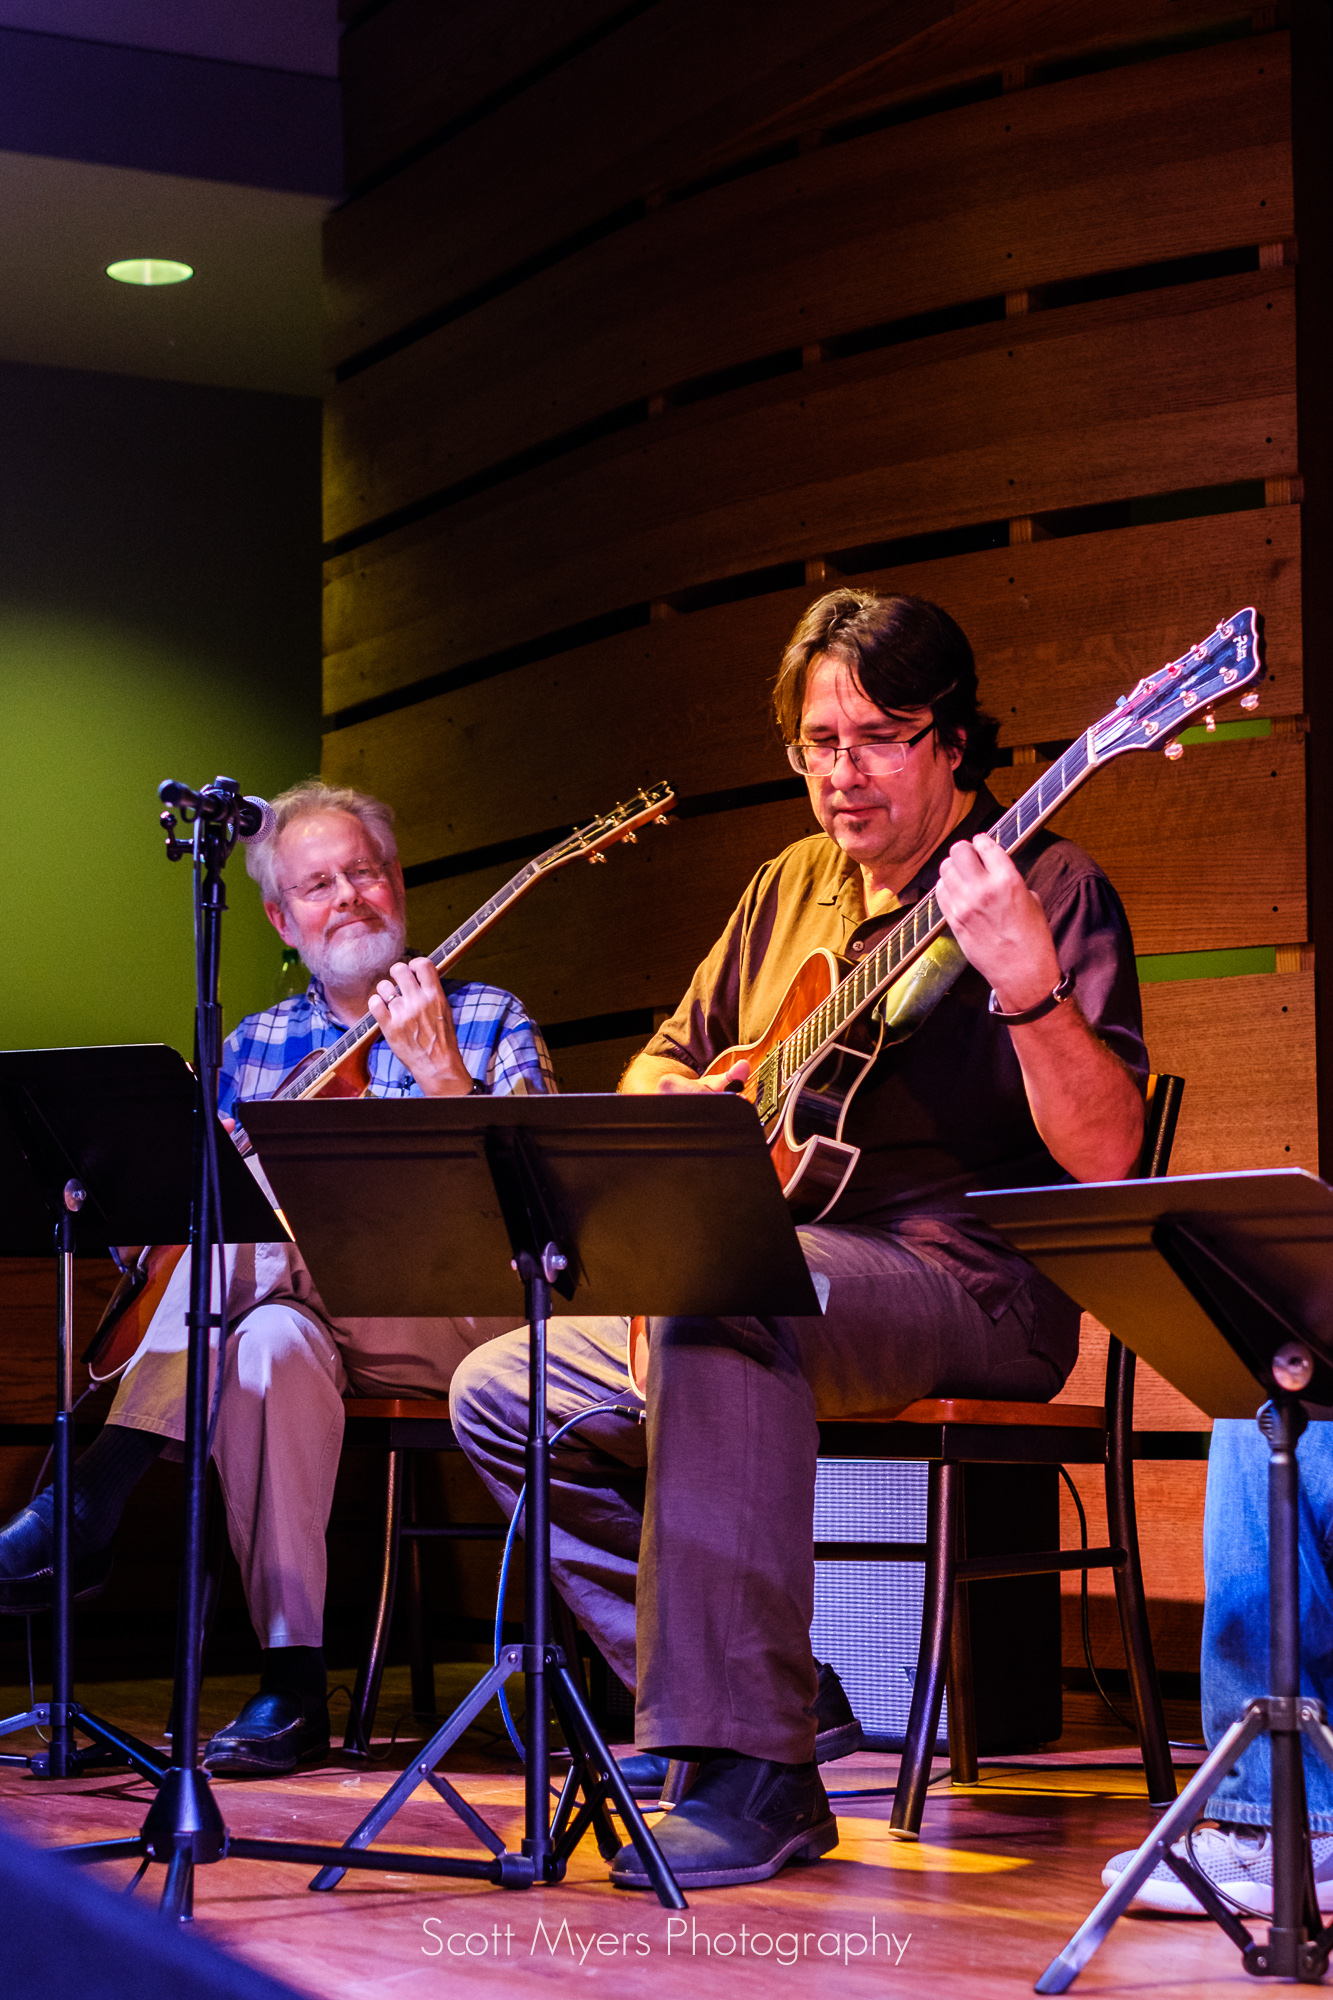 Hank Mackie and Steve Masakowski, great New Orleans Jazz Guitarists